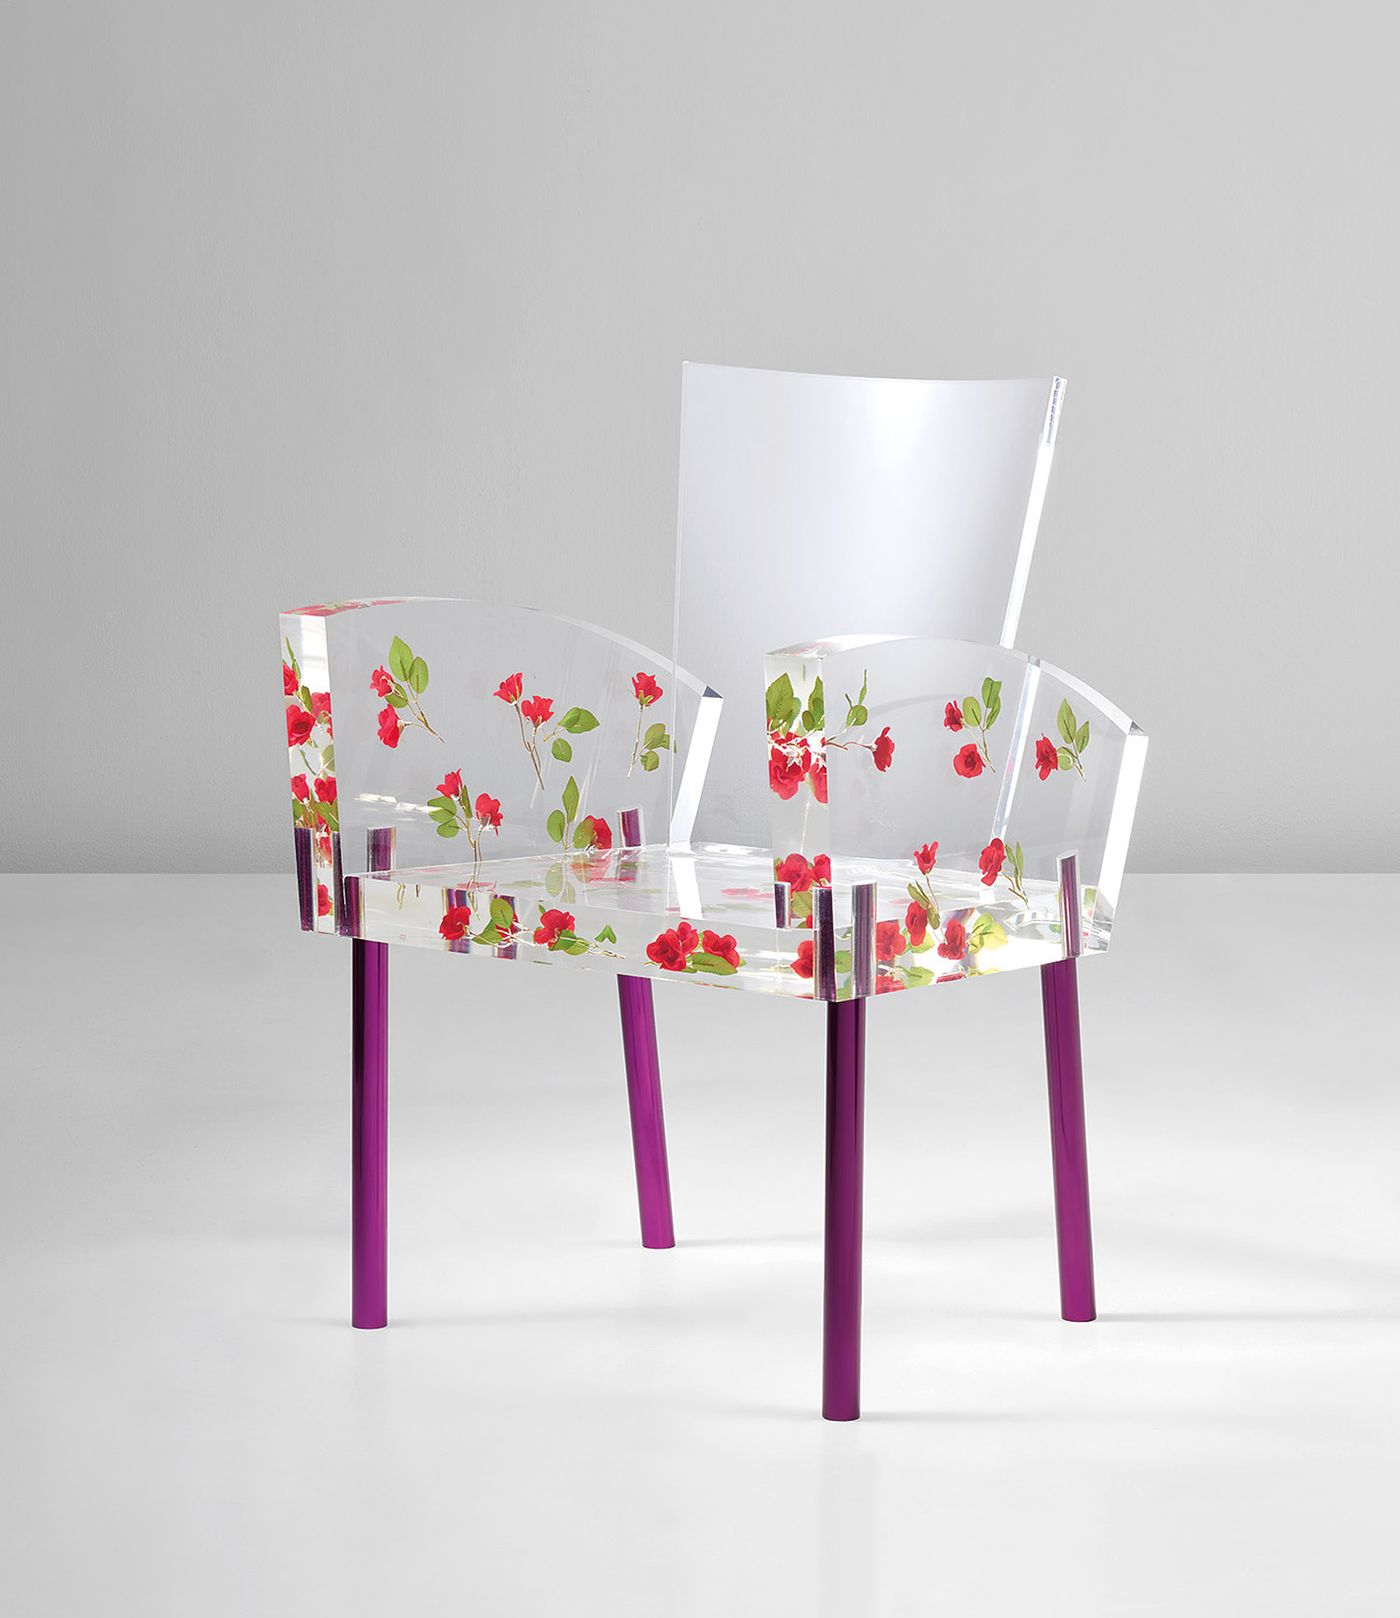 An homage to Miss Blanche DuBois, the heroine in Tennessee Williams' 'A Streetcar Named Desire,' the present chair has become one of the most iconic designs in Shiro Kuramata's oeuvre.